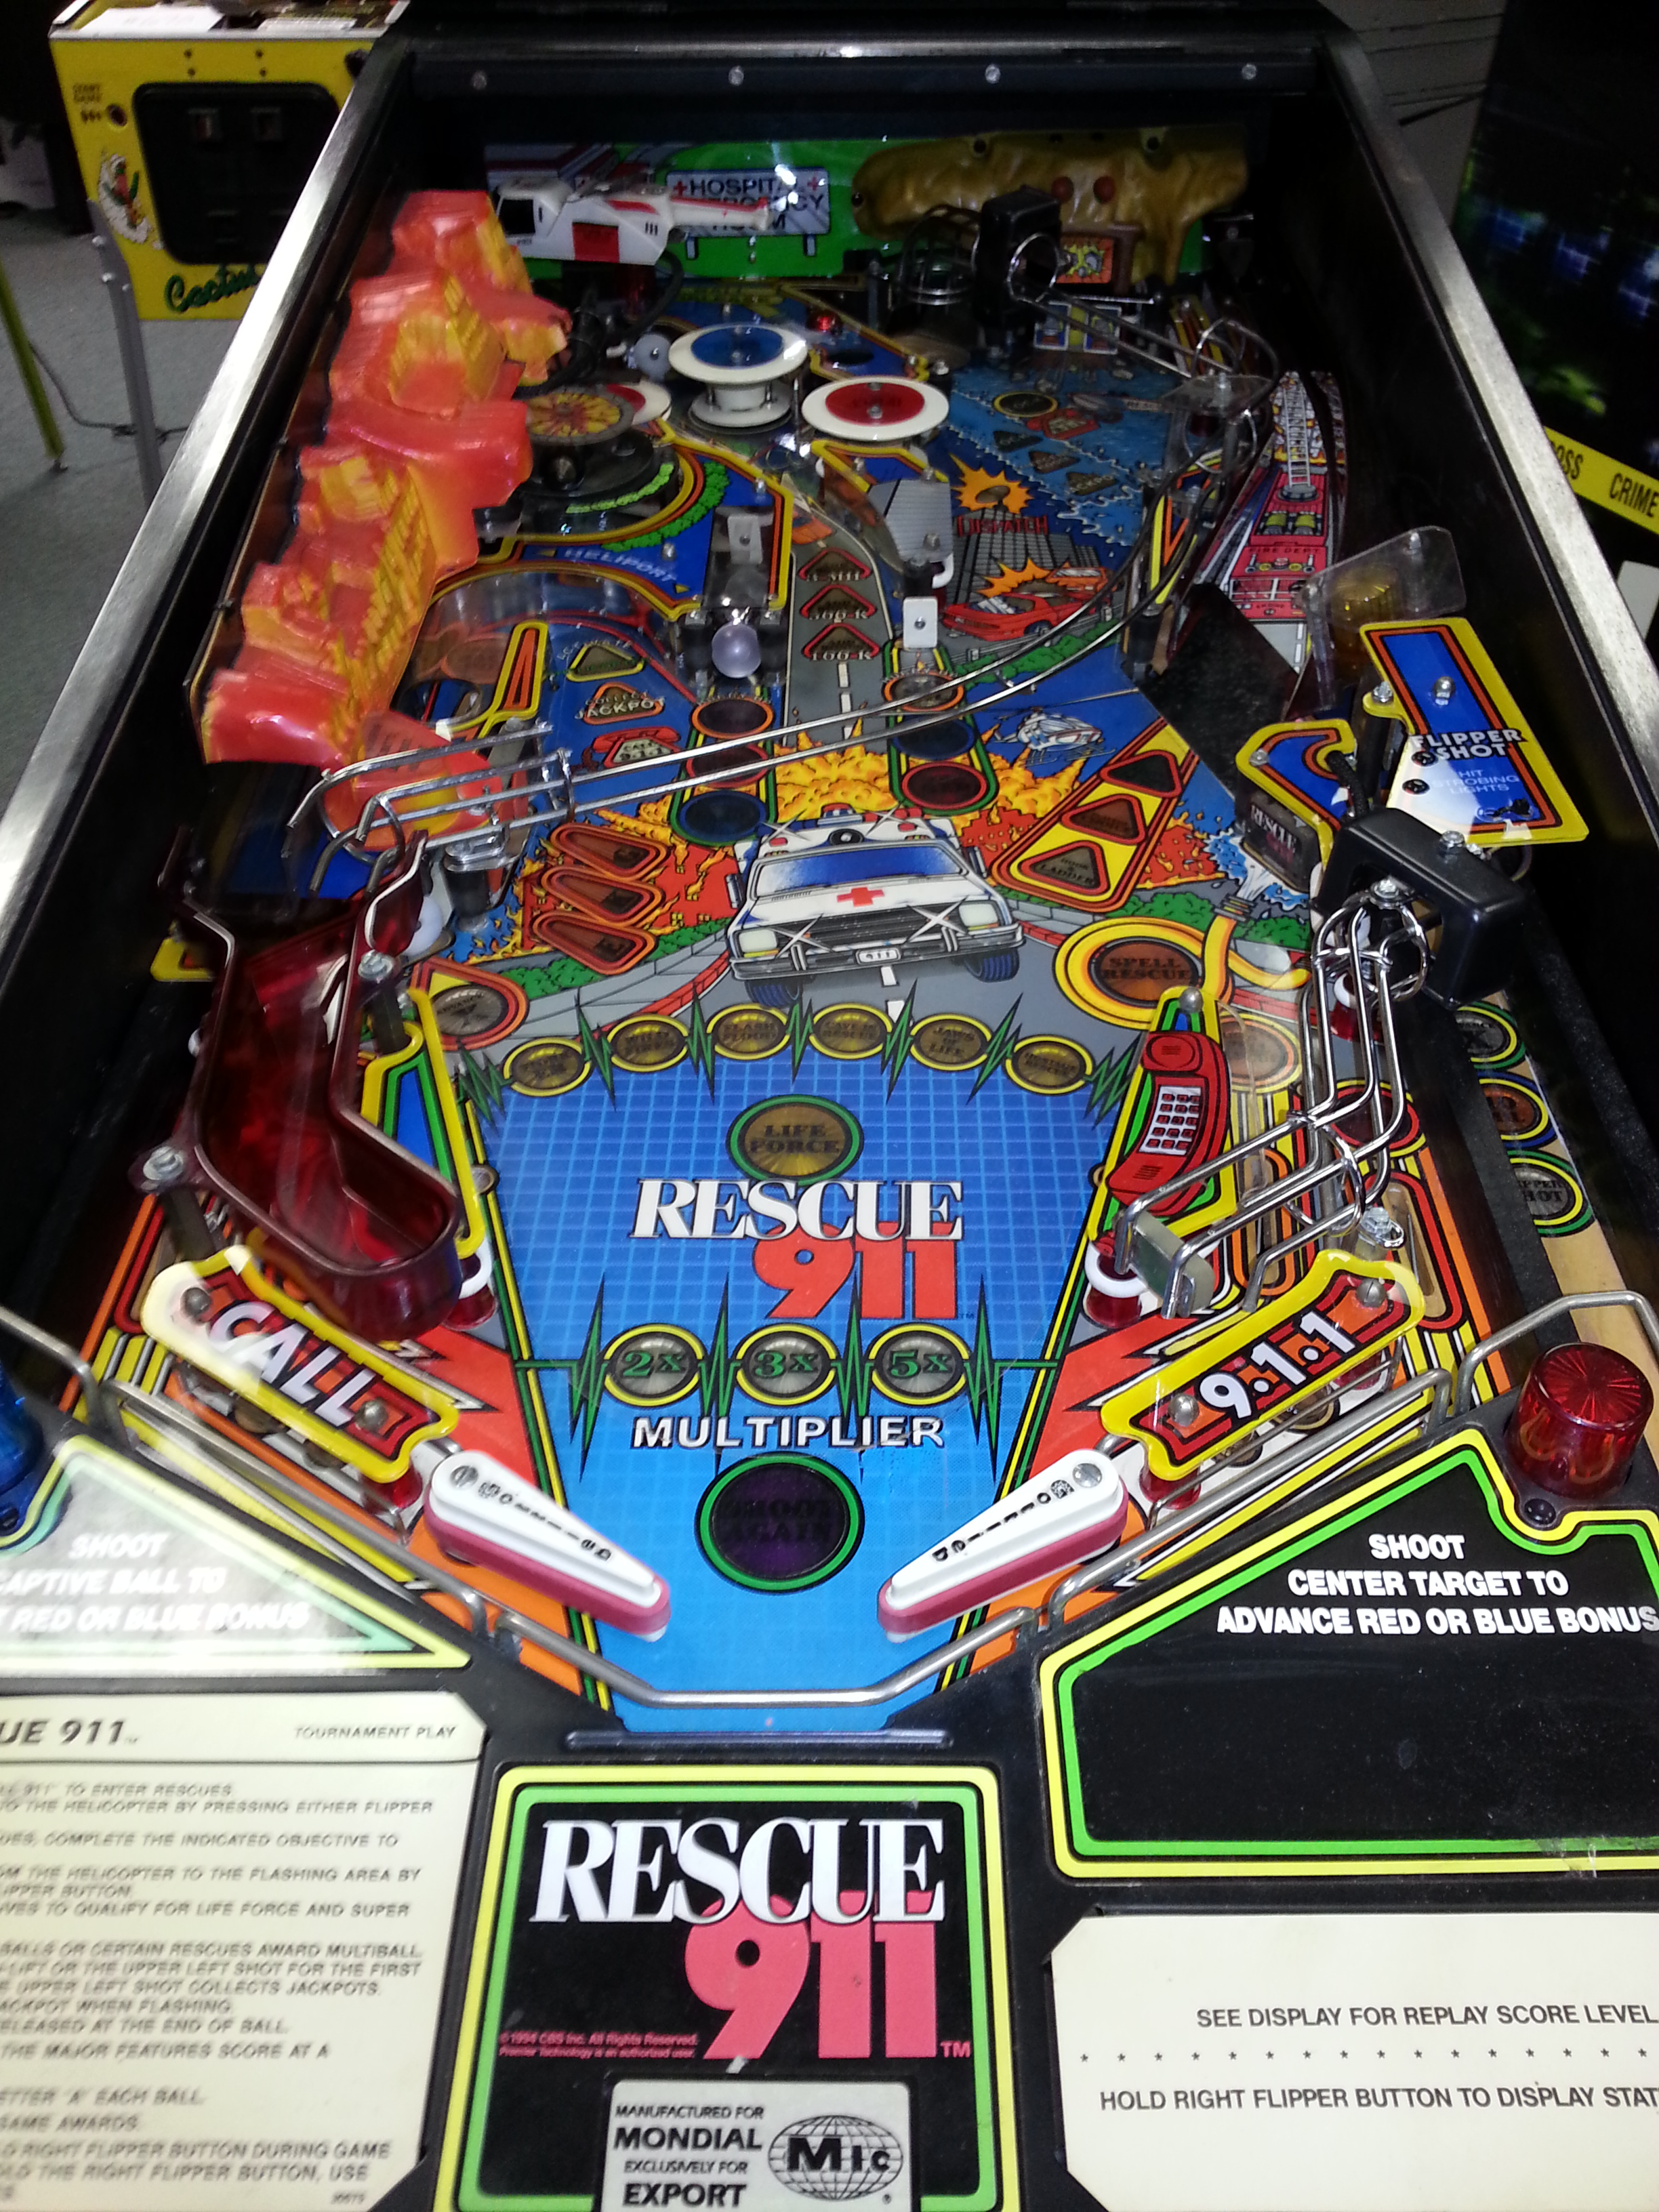 RESCUE 911 Pinball Machine Game for sale by GOTTLIEB THE GAME